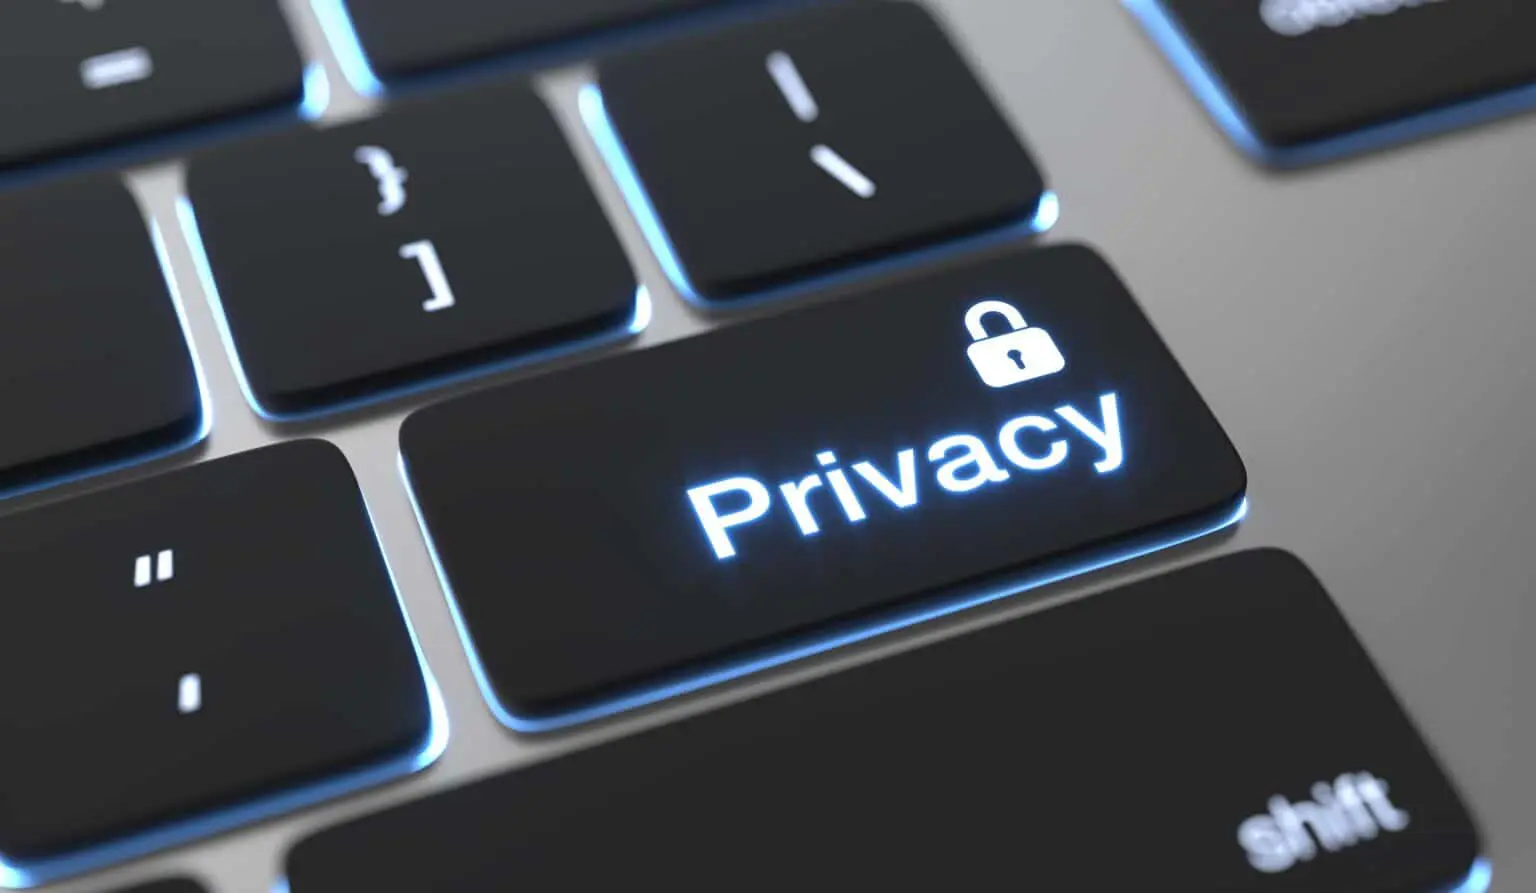 PDPA (Personal Data Protection Act) คืออะไร